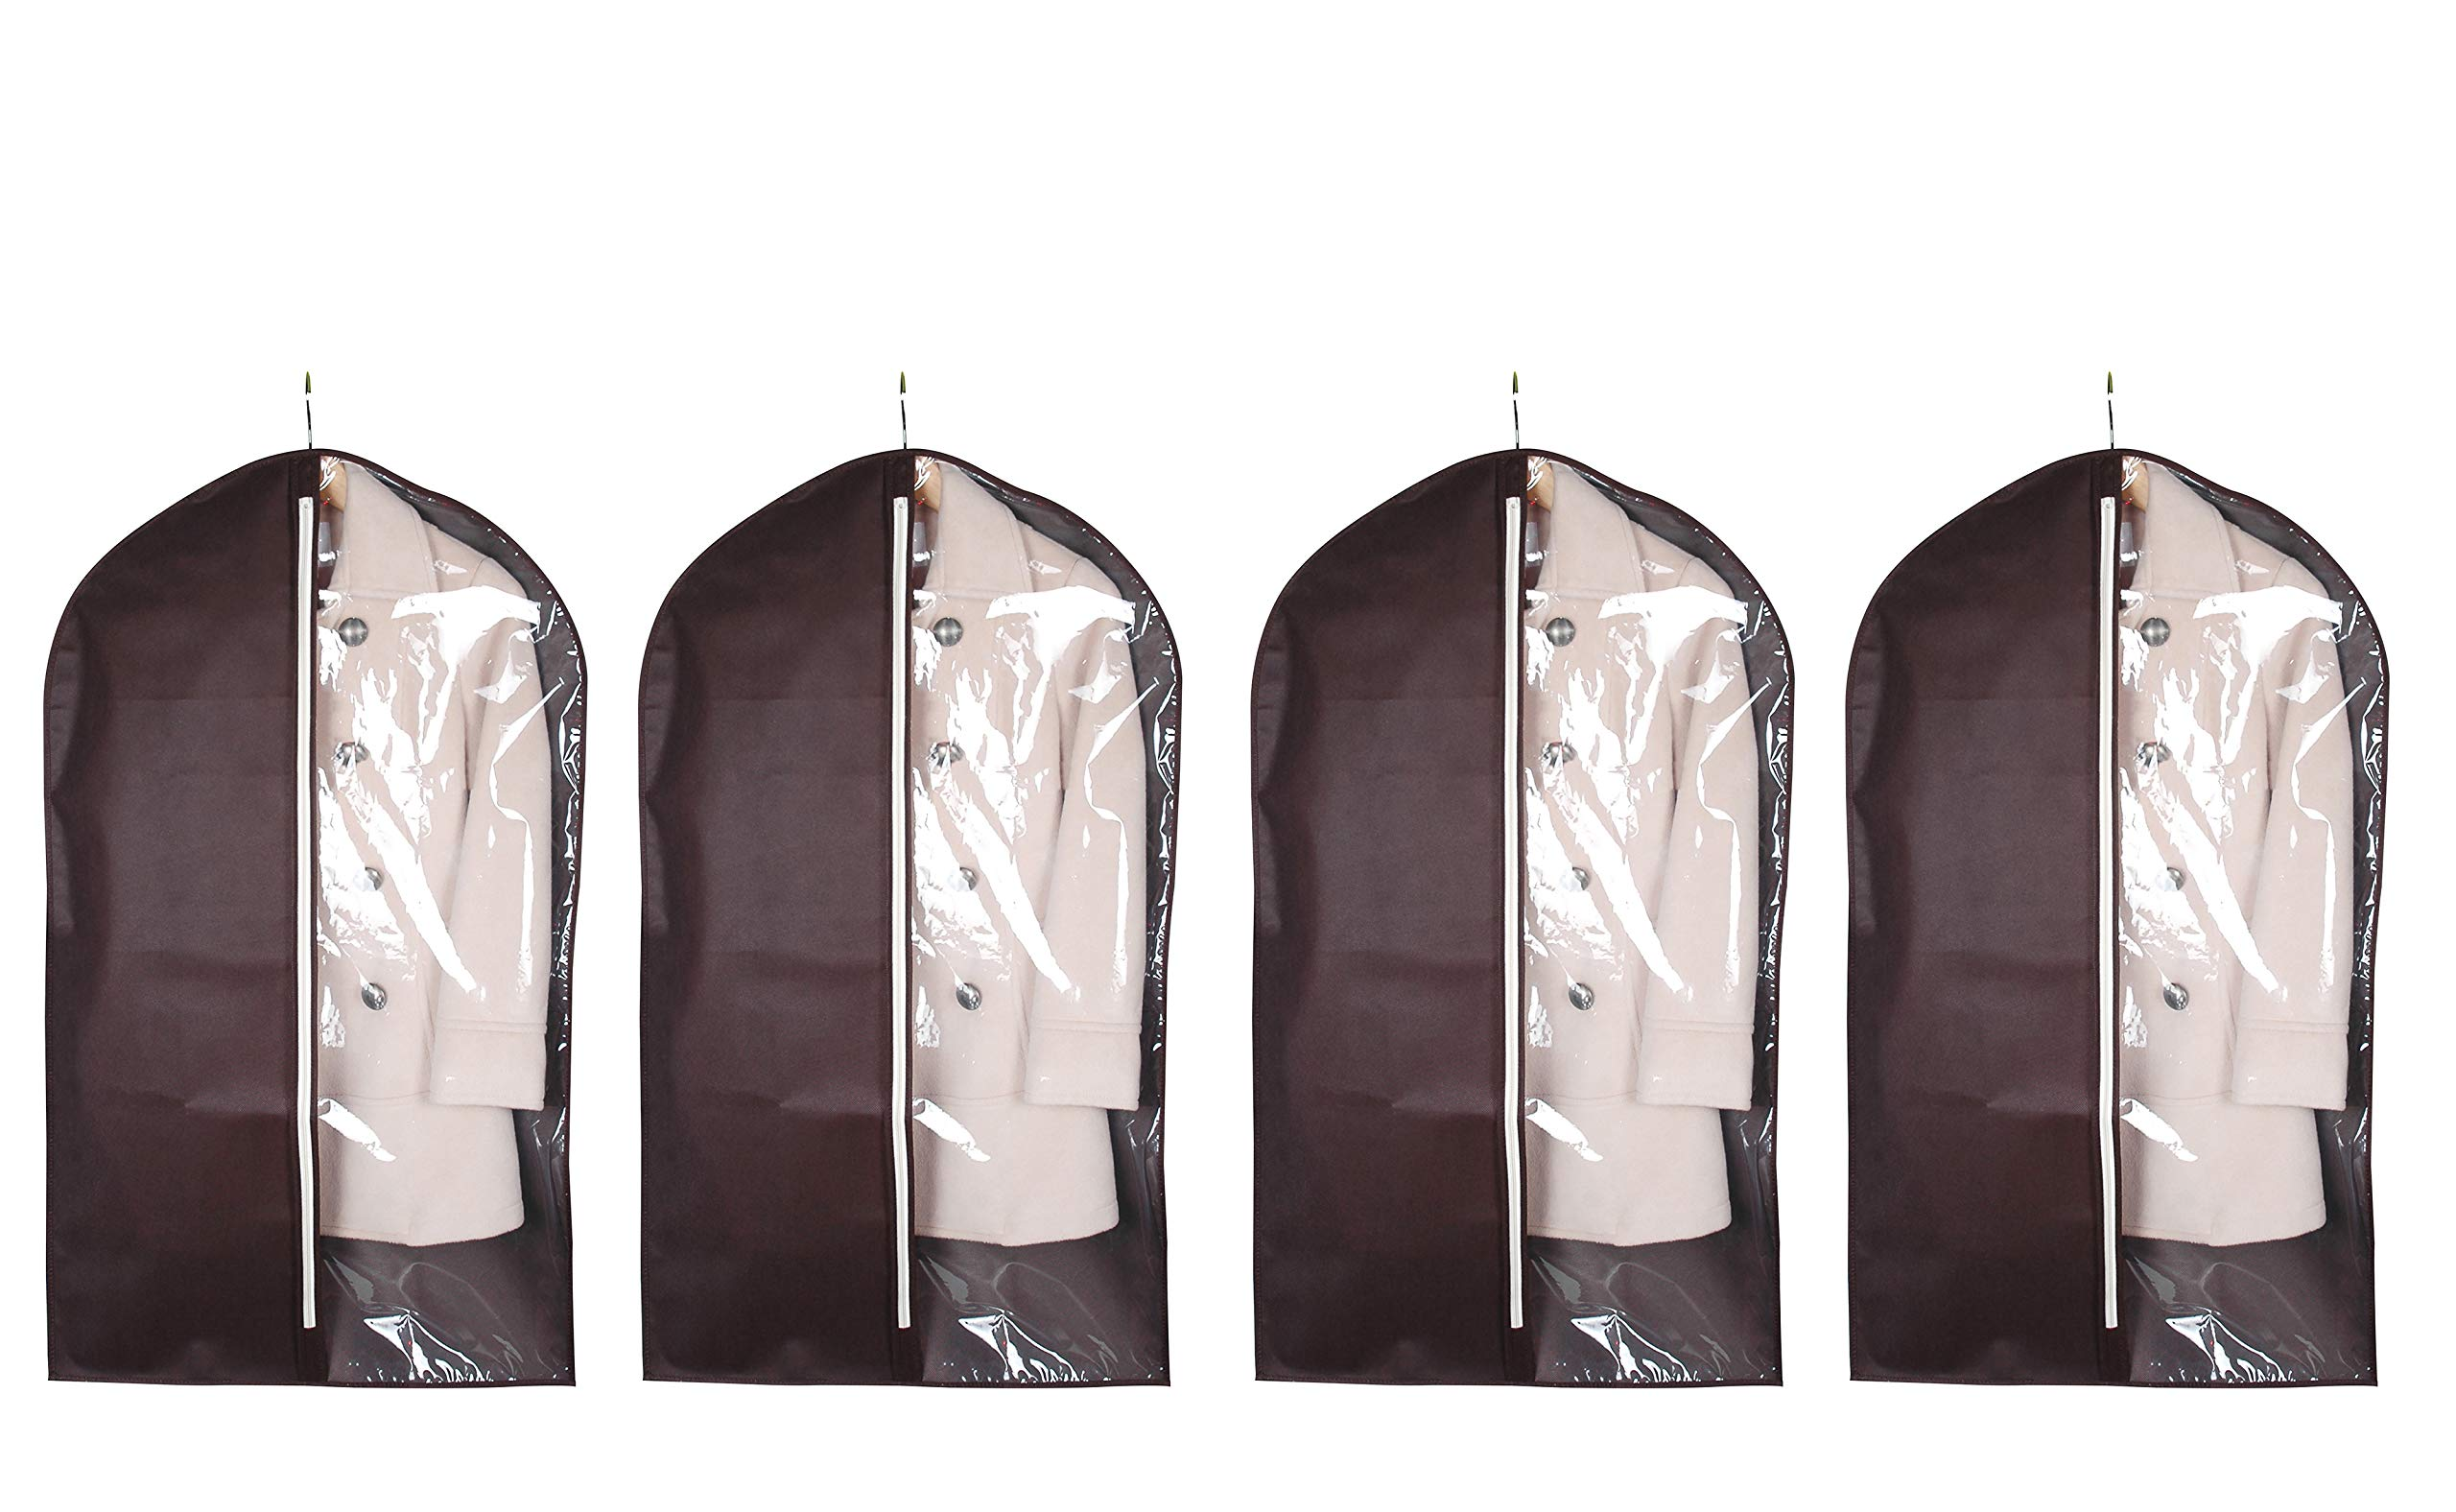 iTIDY Garment Cover-Suit Bags,Breathable Clothes Bags,Lightweight Clothing Dust Cover for Home Storage & Travel,Chocolate Colour with Practical Clear Window,Pack of 4